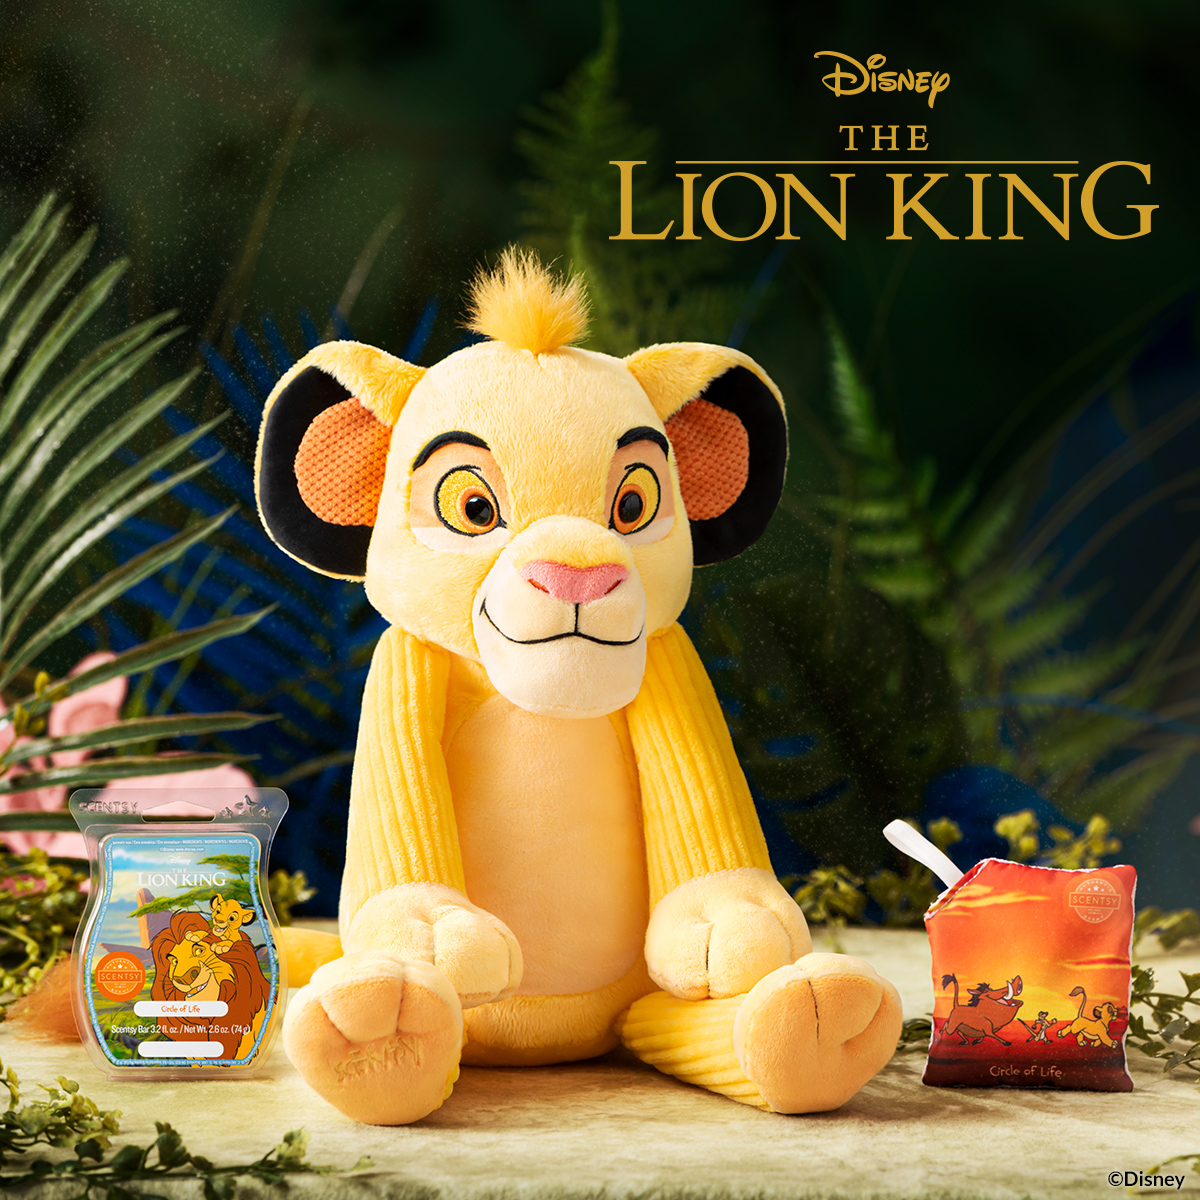 Lion King Scentsy Buddy